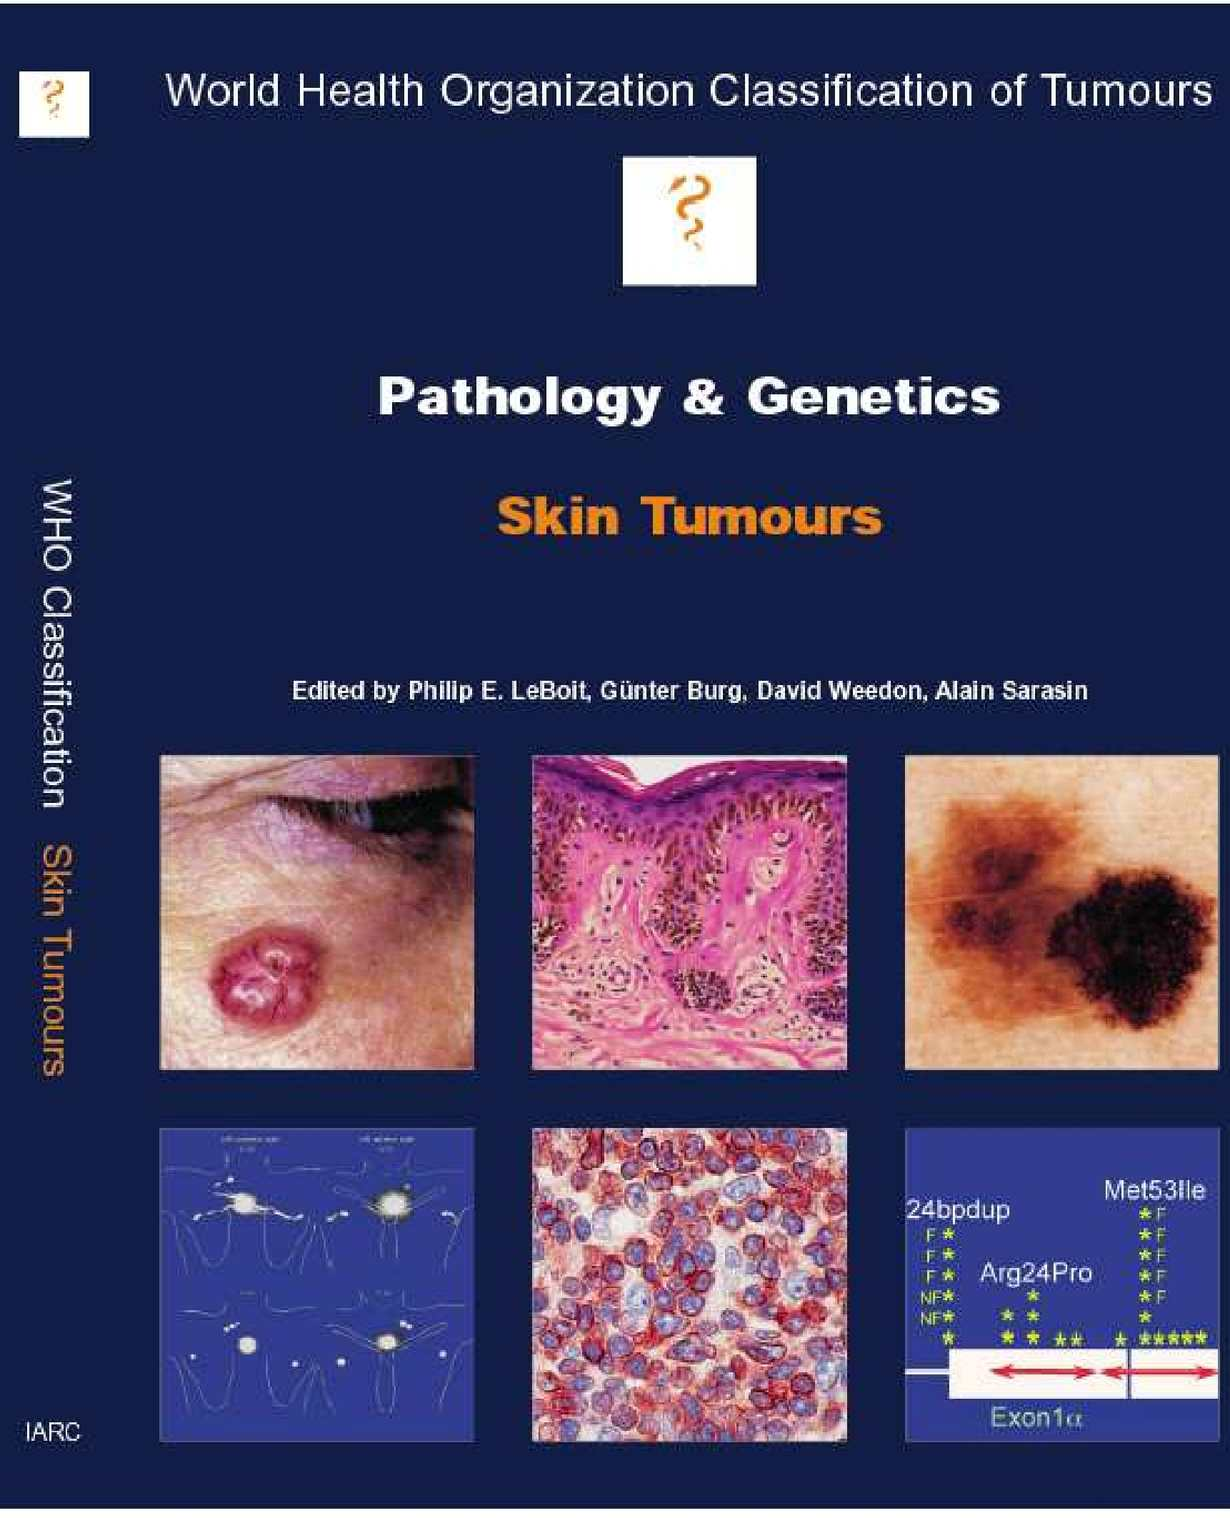 confluent and reticulated papillomatosis pathology outlines